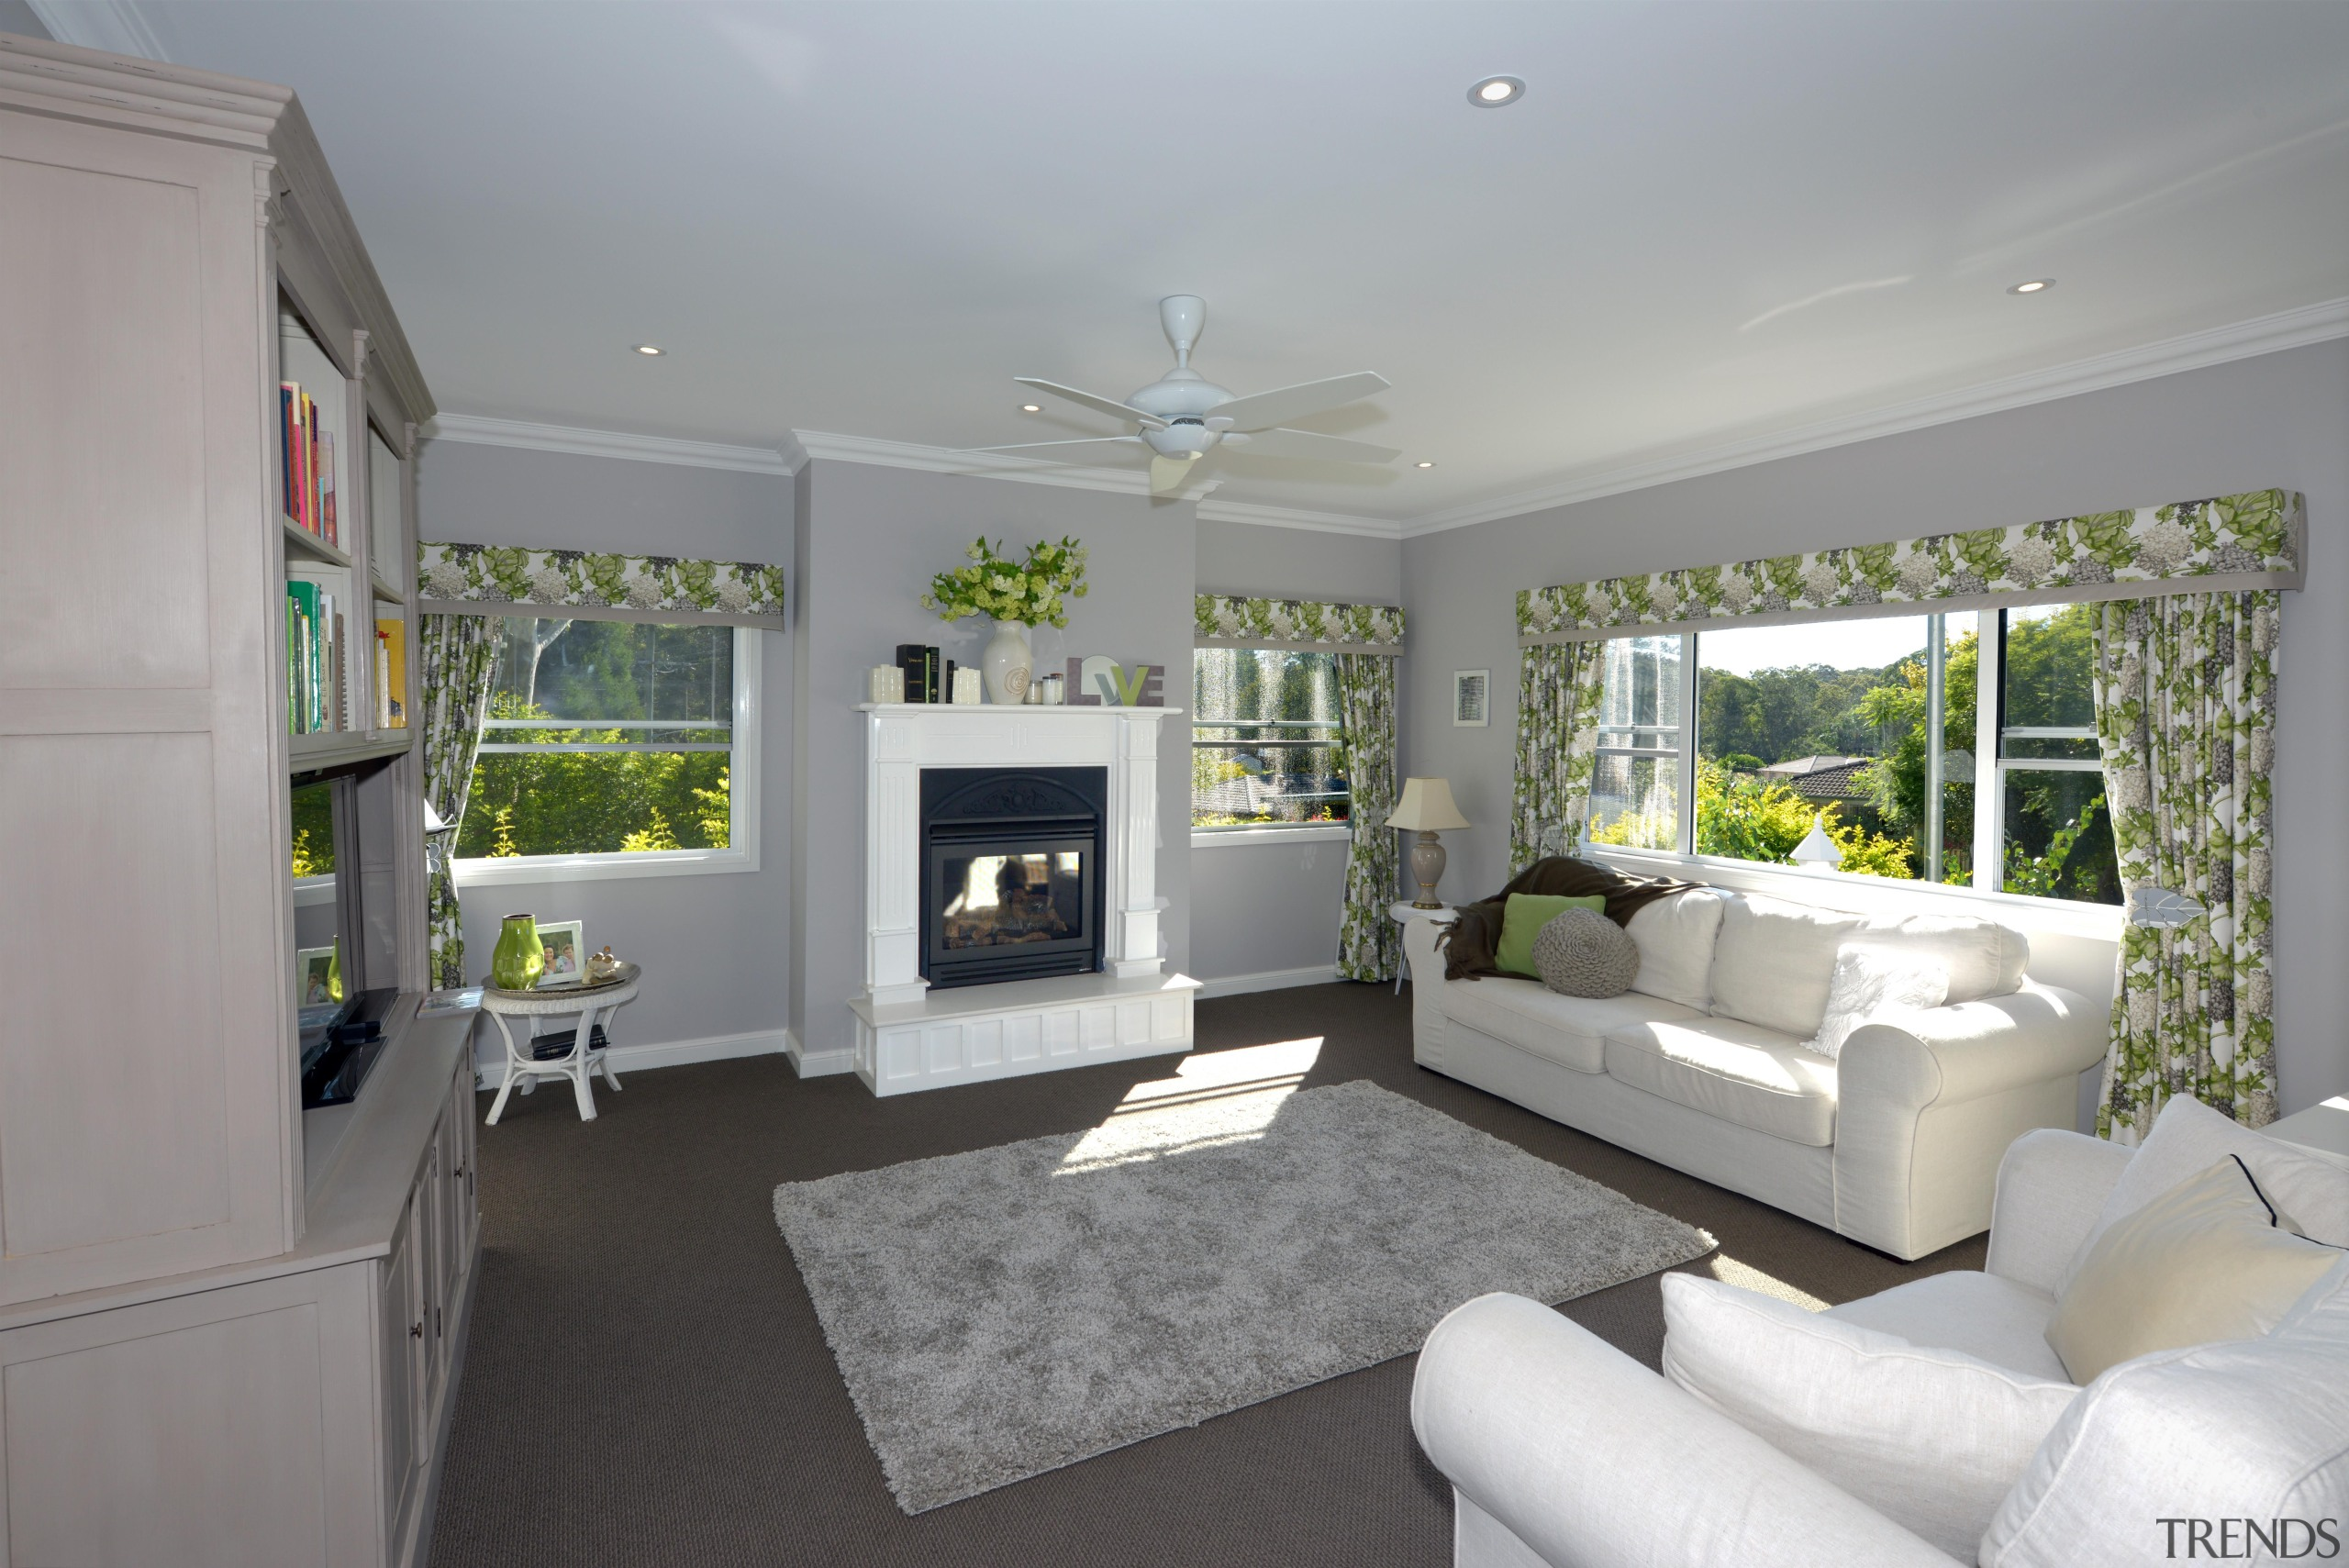 At Manor we believe in harmony - harmony ceiling, home, house, interior design, living room, property, real estate, room, window, gray